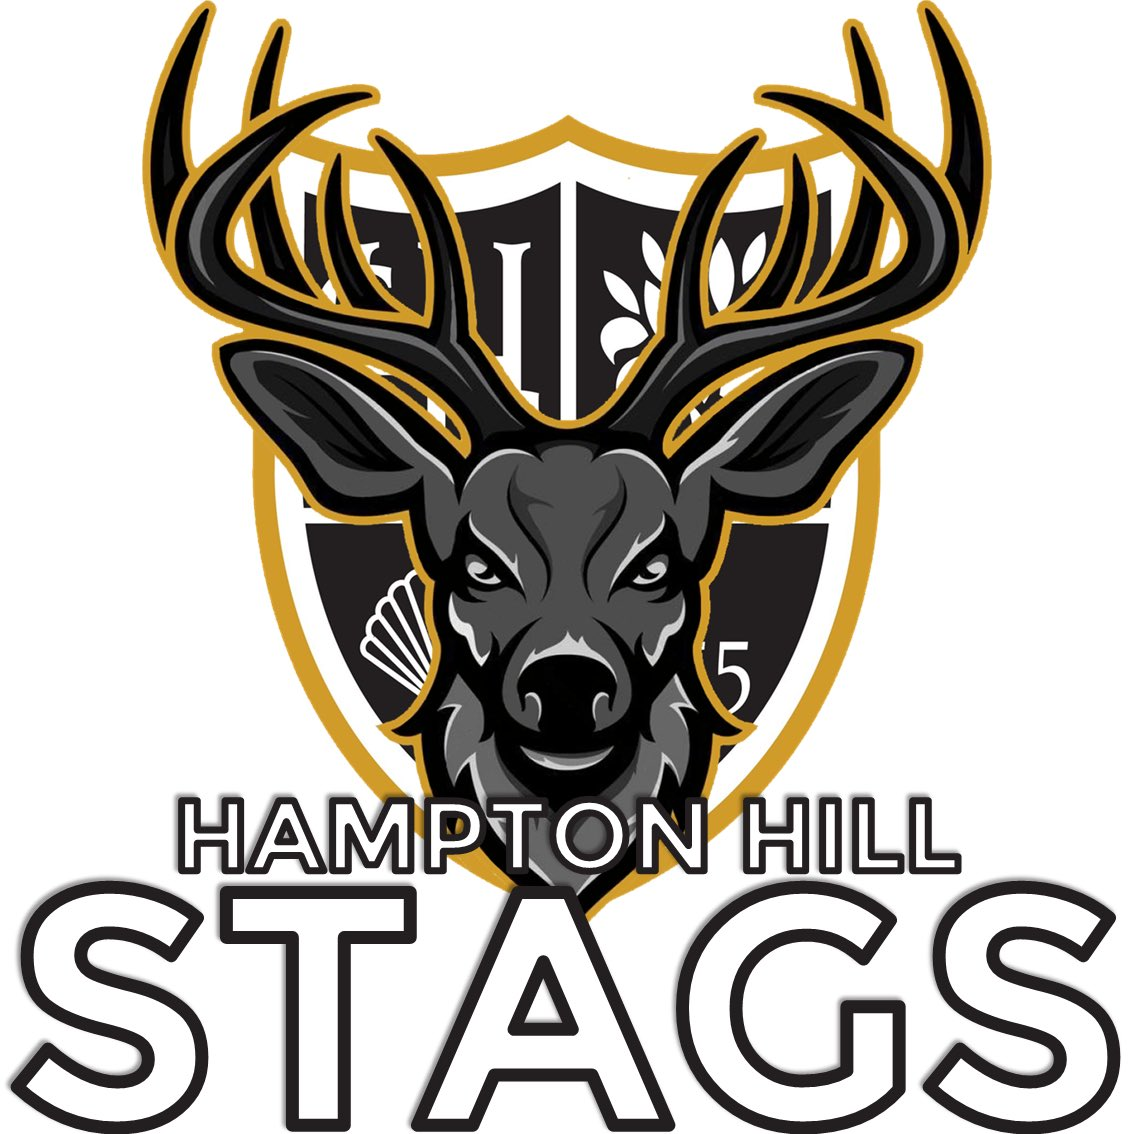 RESULT  The @HamptonhillCC Stags overcome The @KCC2003 Tigers and advance to the Midweek NW Region Final where they'll battle it out against The @waltonwolves https://t.co/69kALML1j6